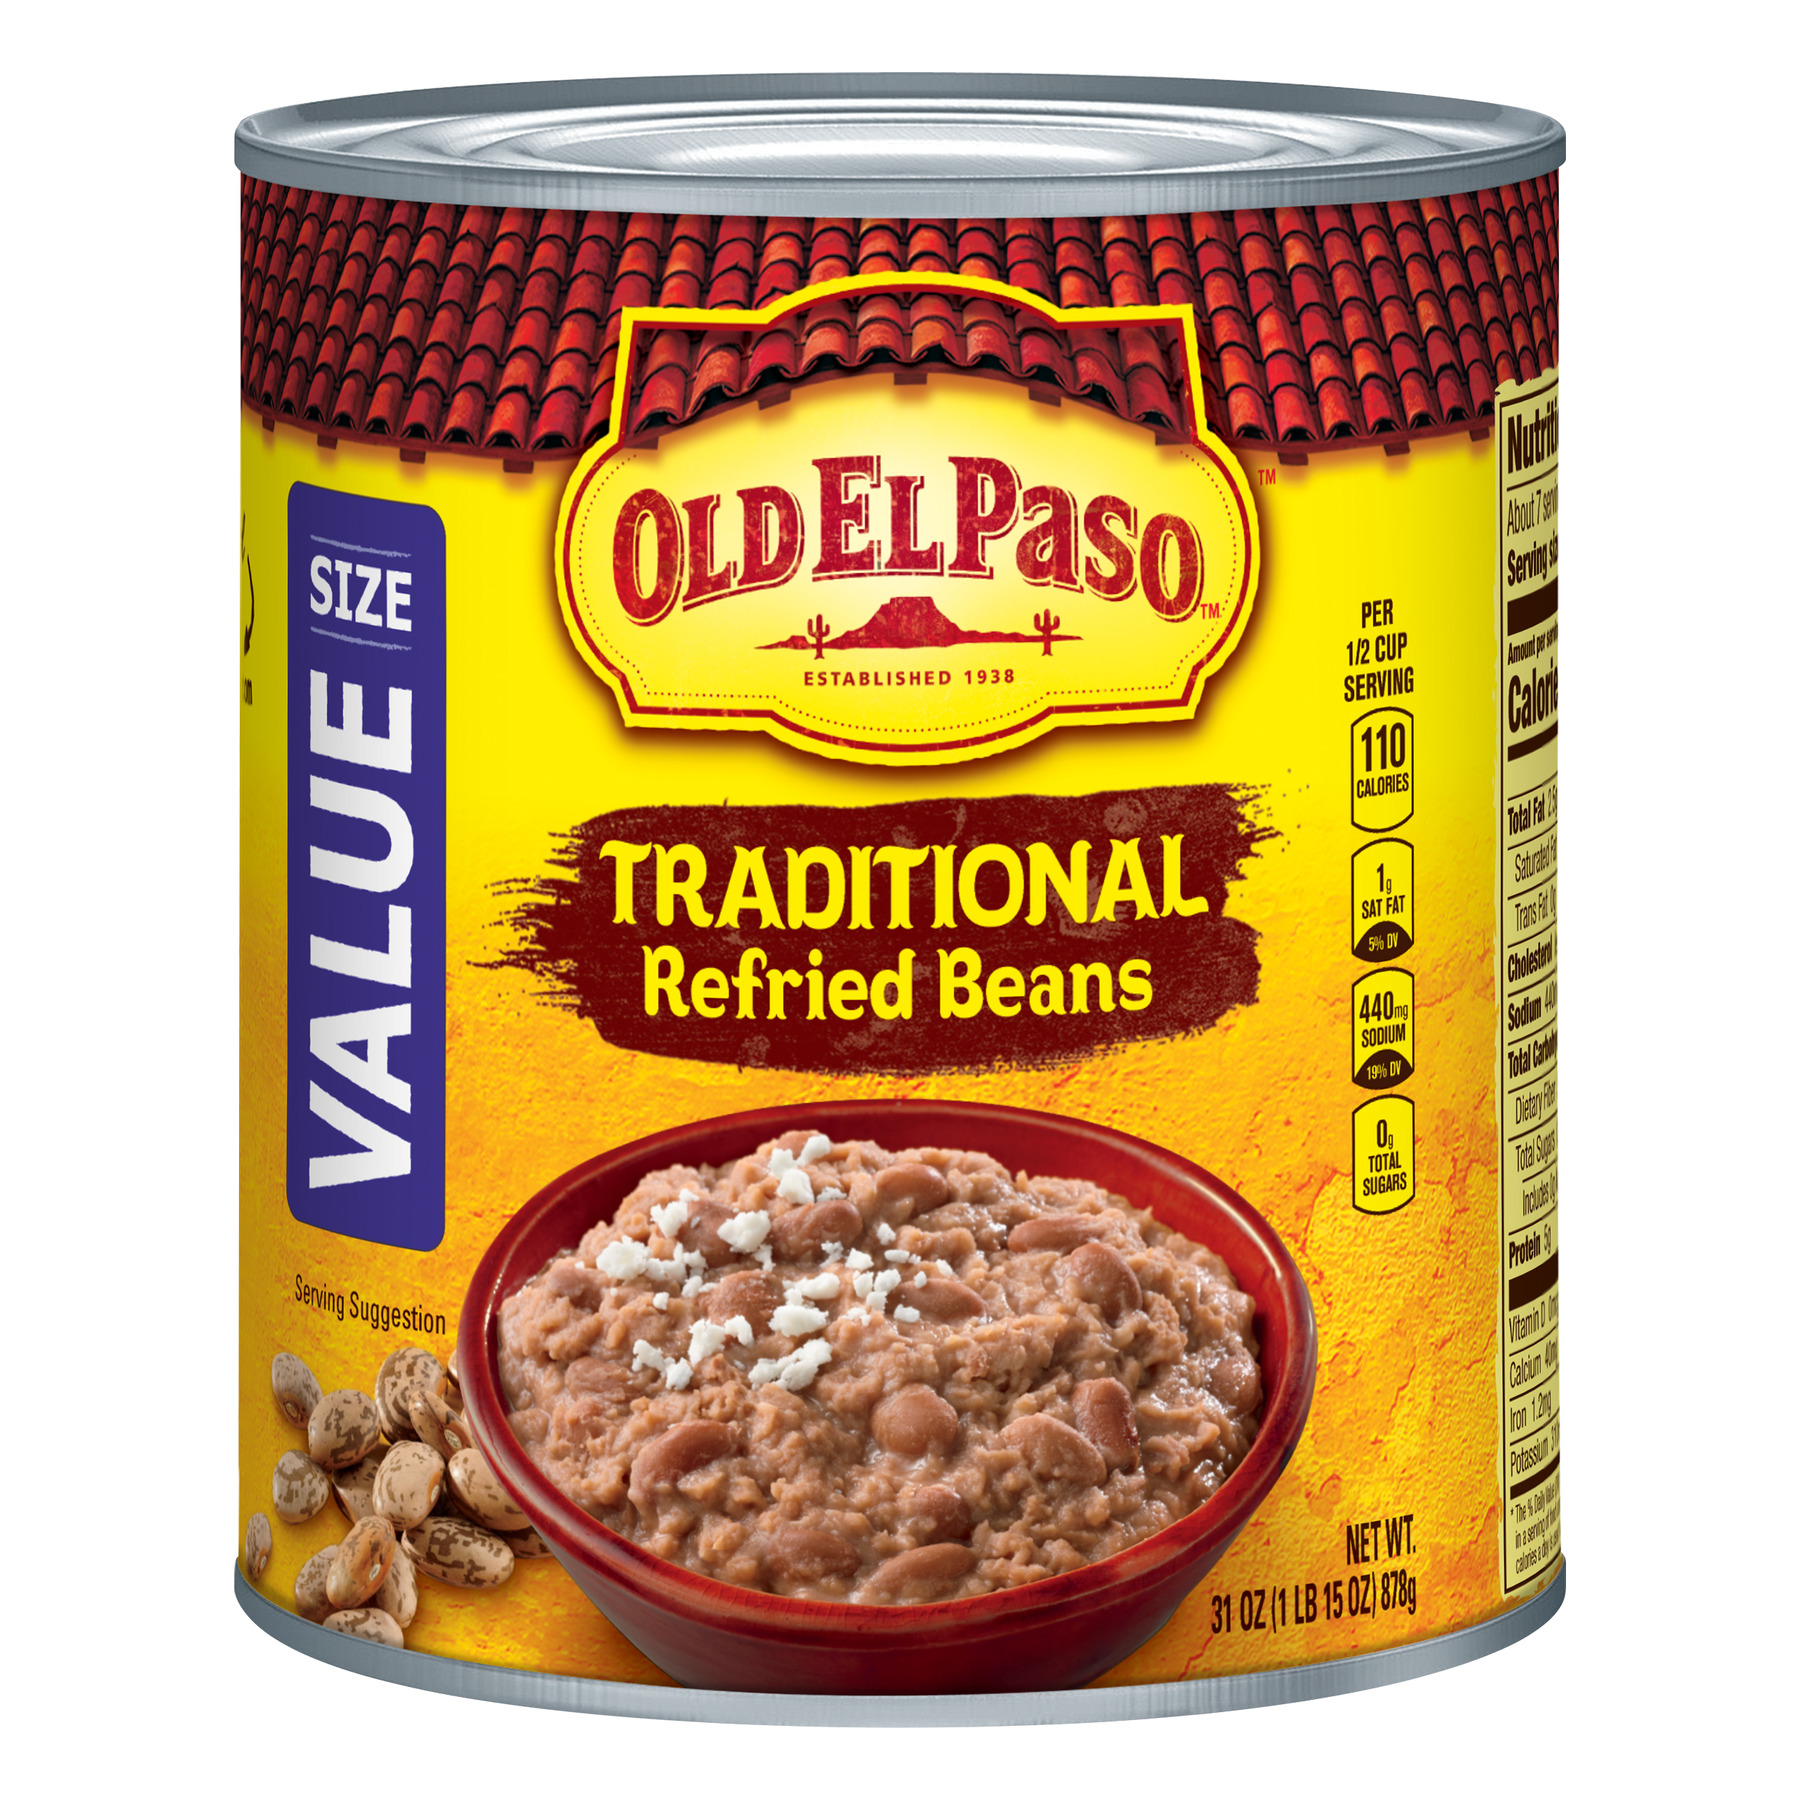 (6 Pack) Old El Paso Traditional Refried Beans, Value Size, 31 oz Can